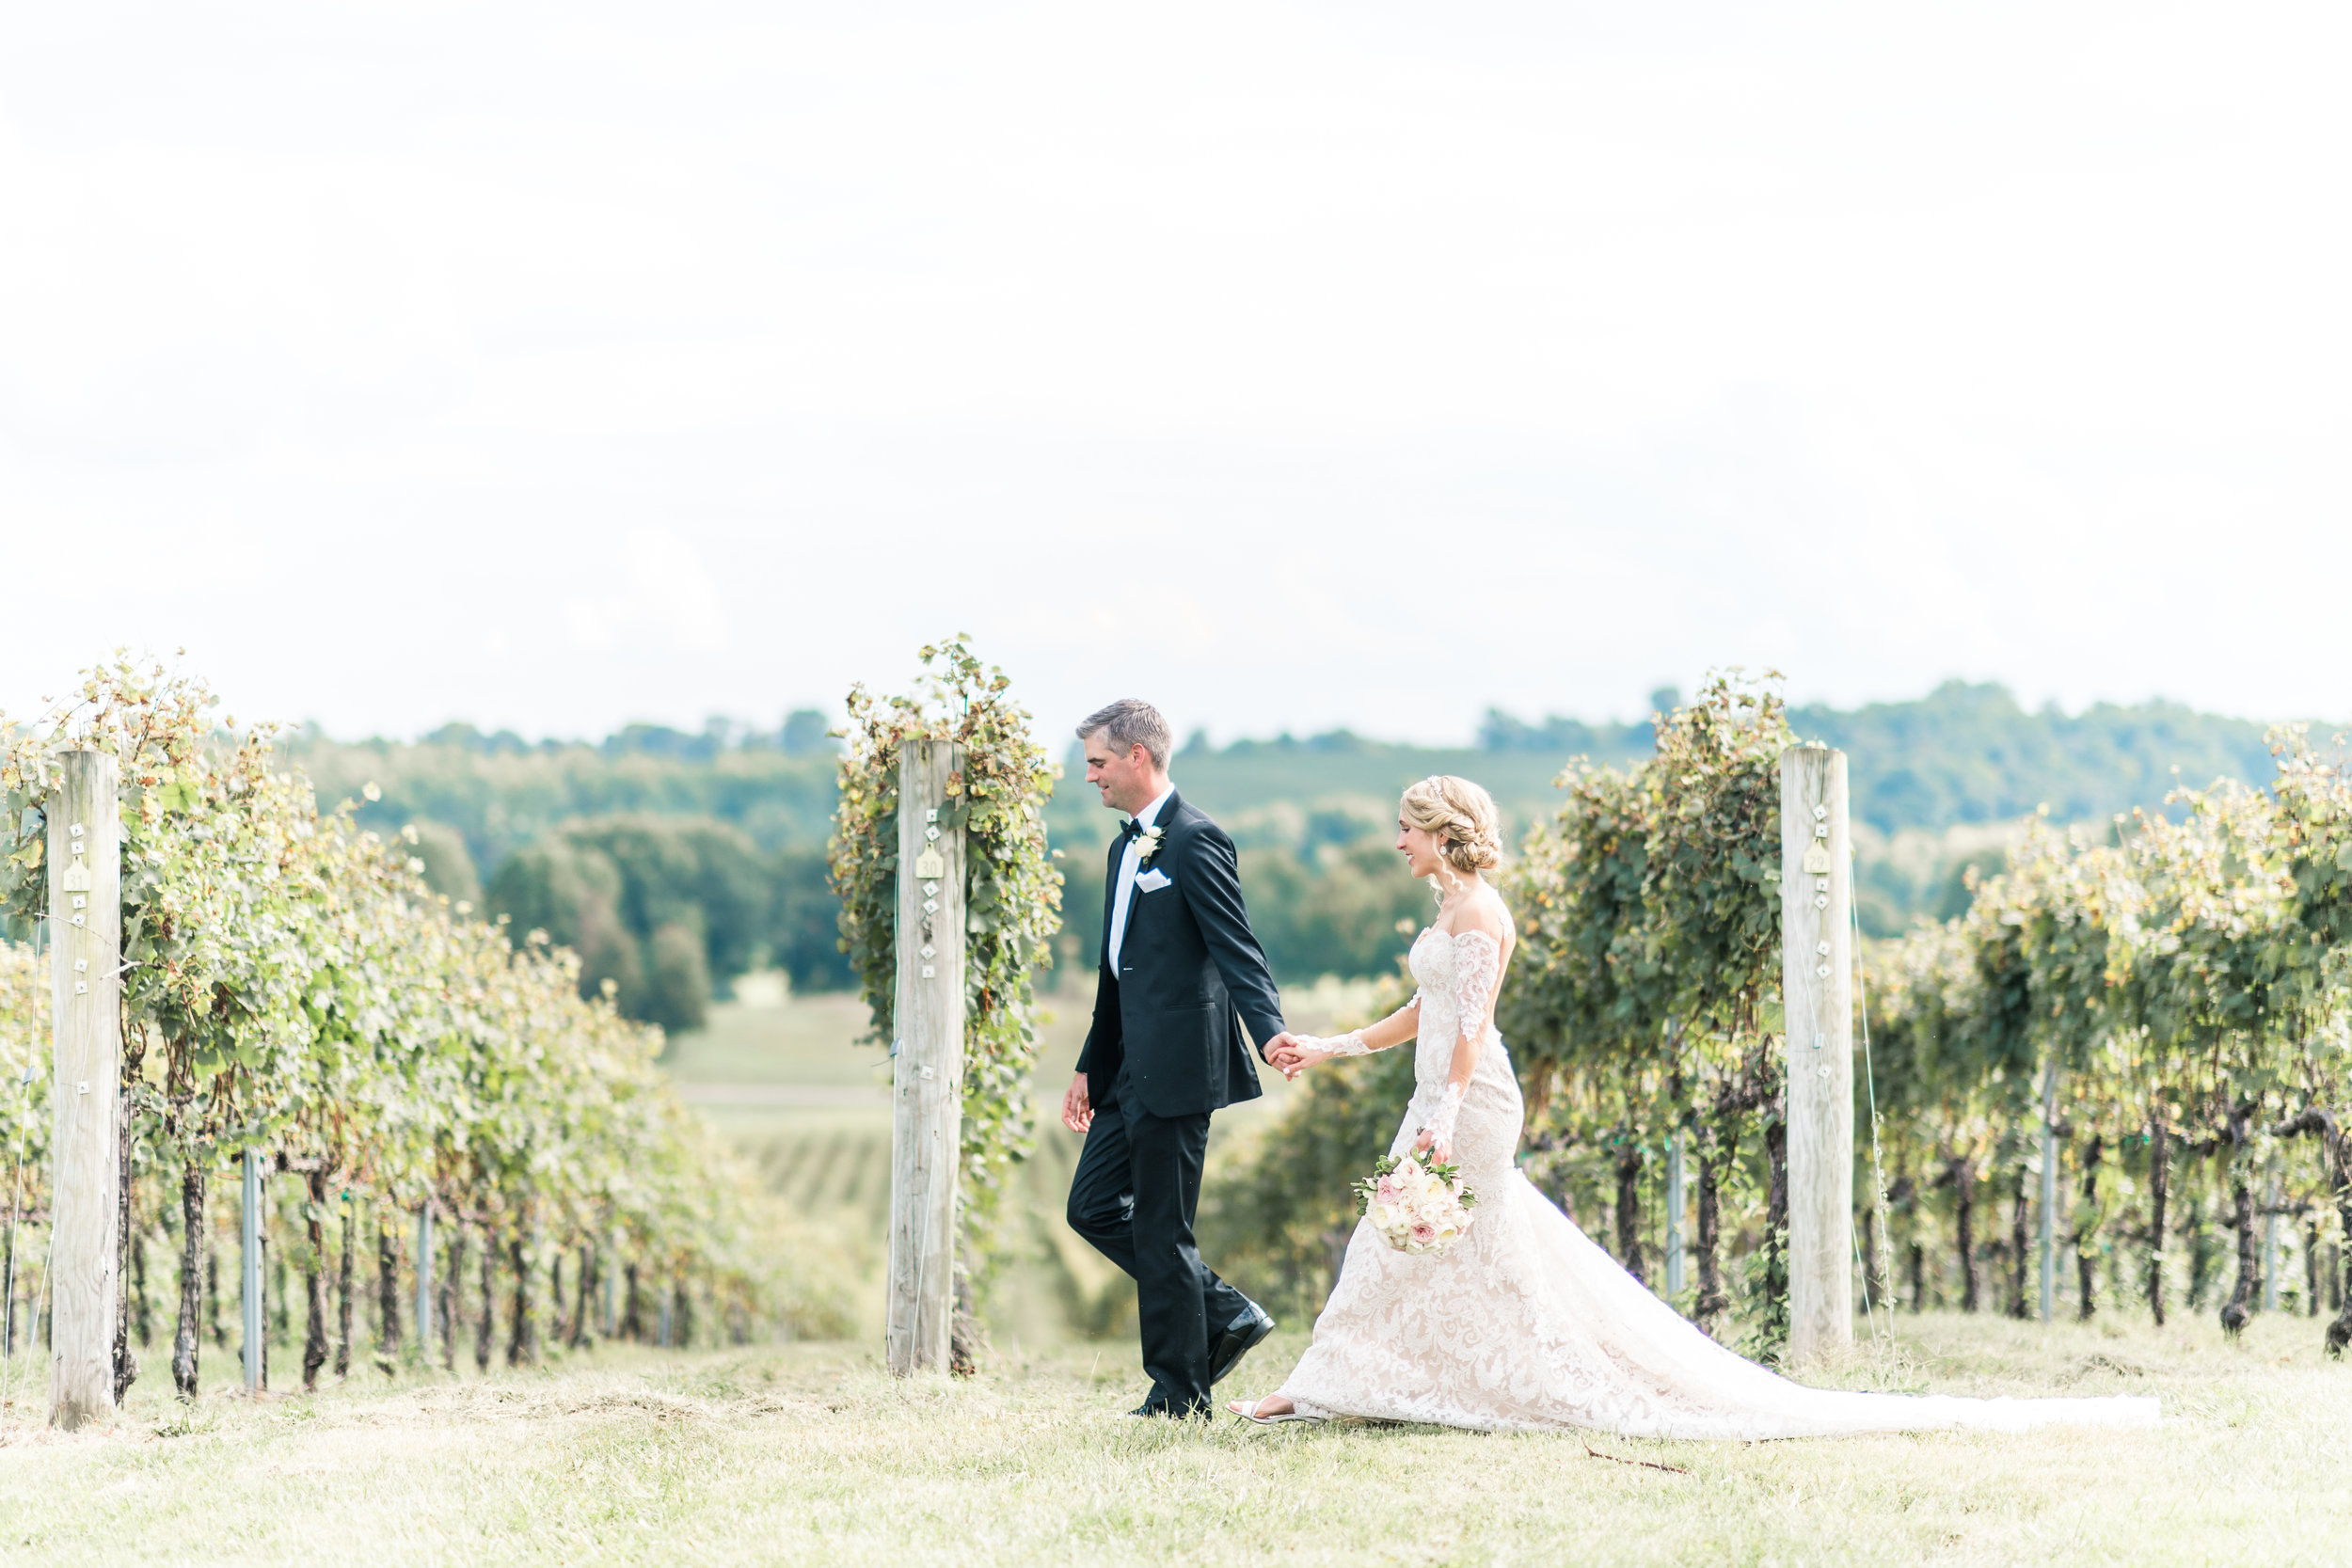 3-chris-lindsay-trump-winery-charlottesville-virginia-wedding-photographer-49.jpg